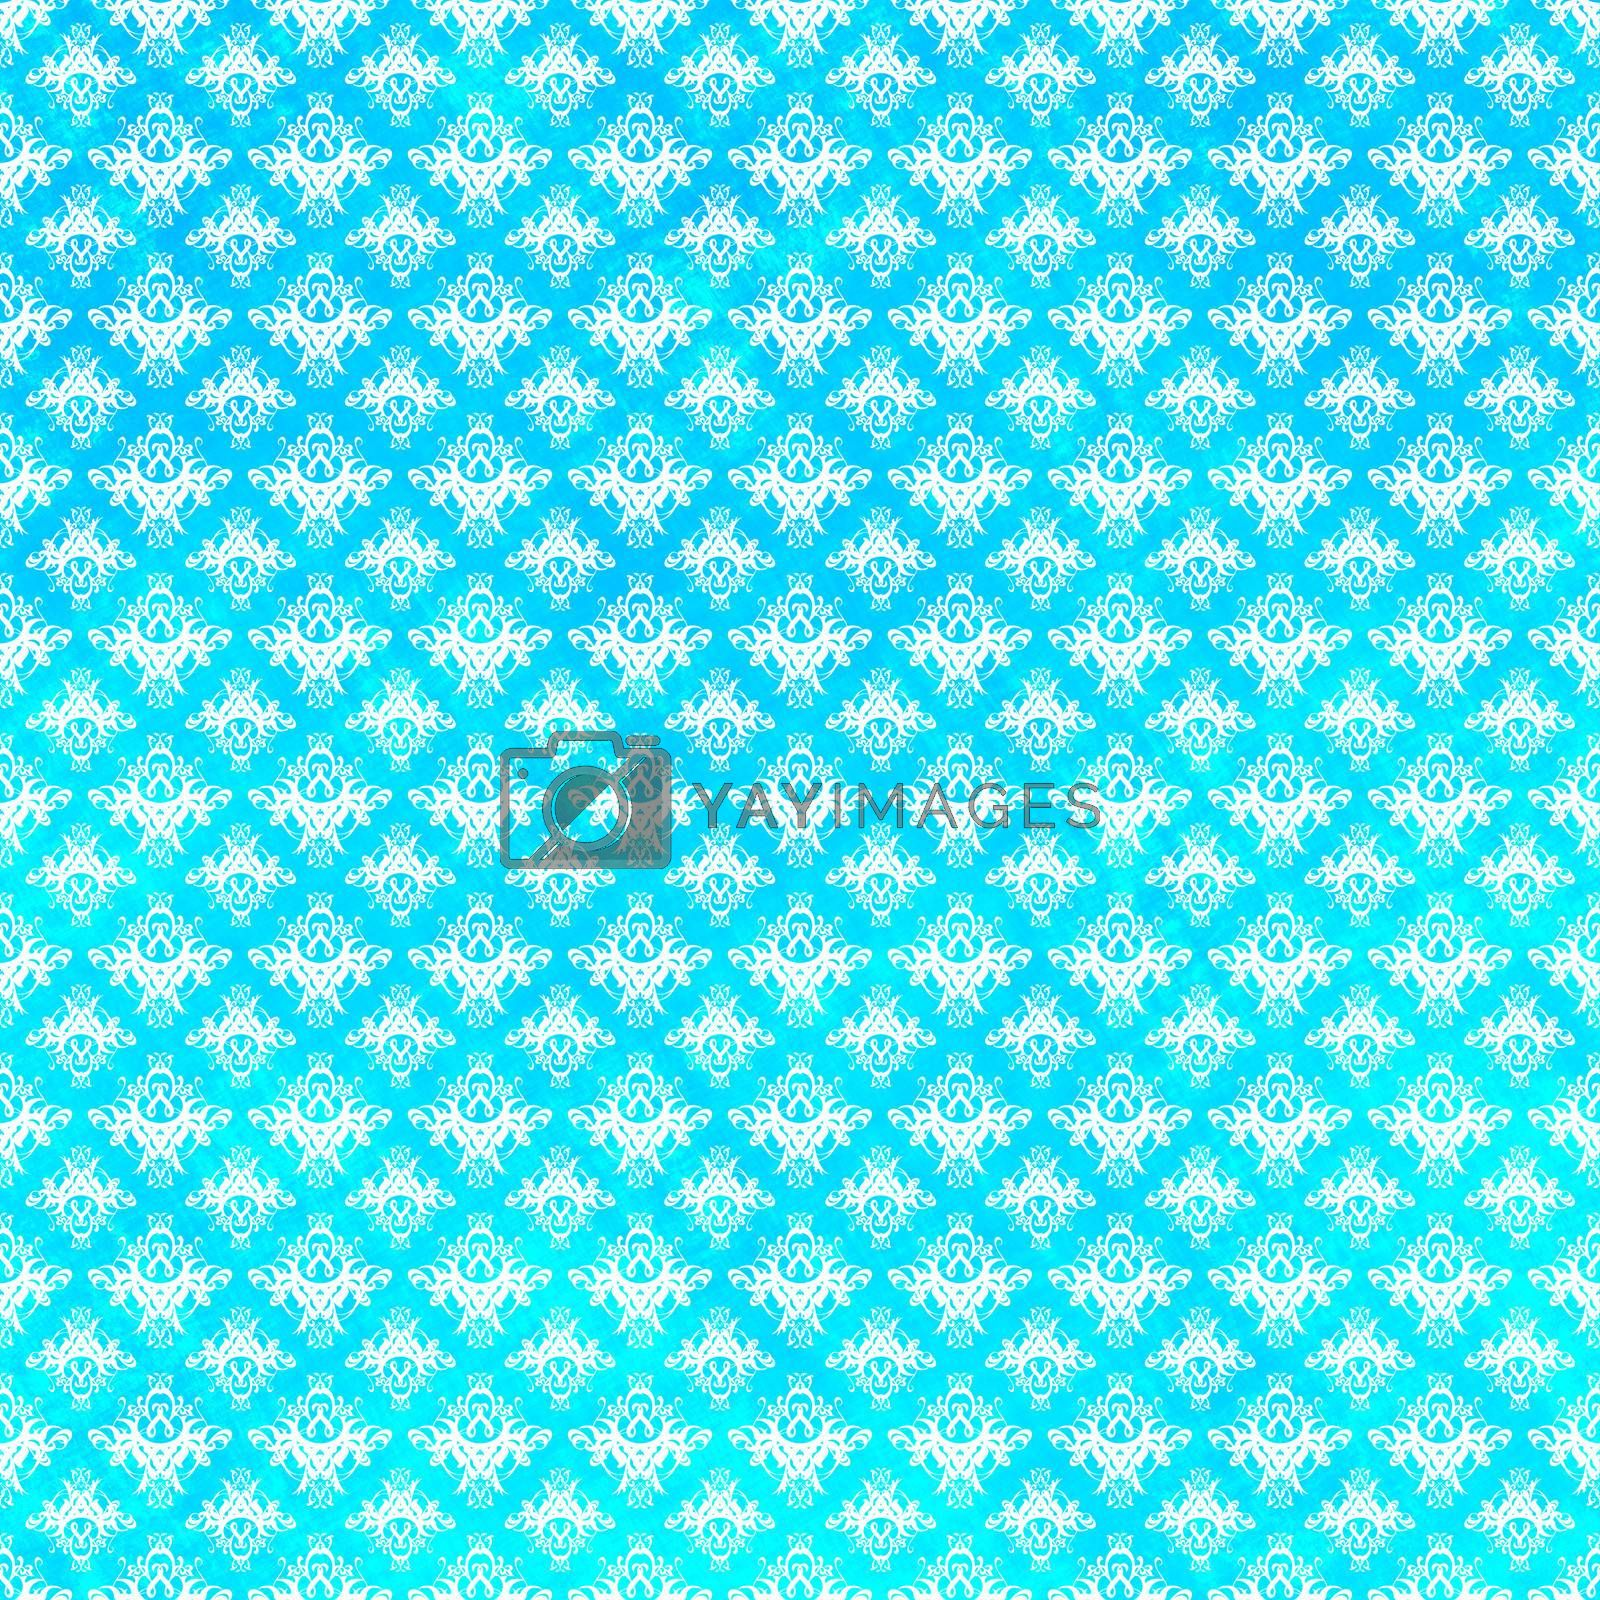 Blue damask pattern with grunge textures.